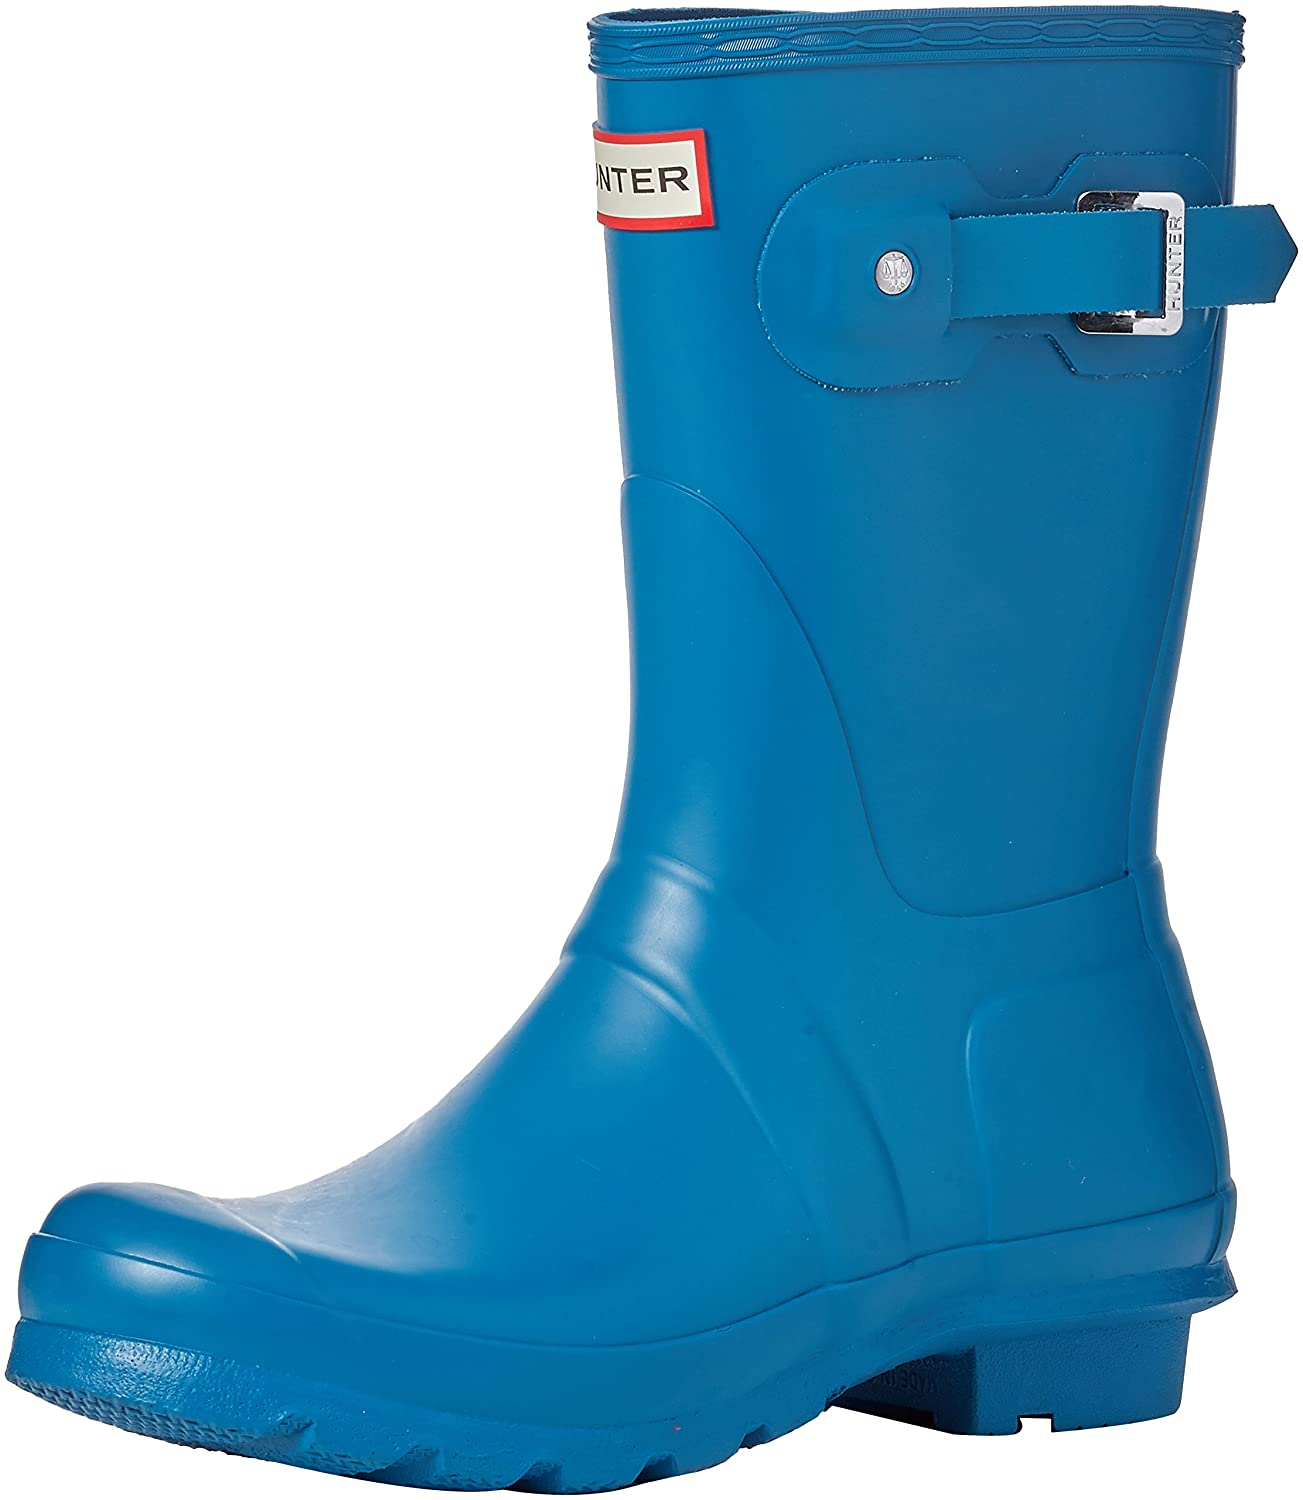 Hunter Women's Original Short Rain Boot B06VS7LJMF 9 B(M) US|Ocean Blue